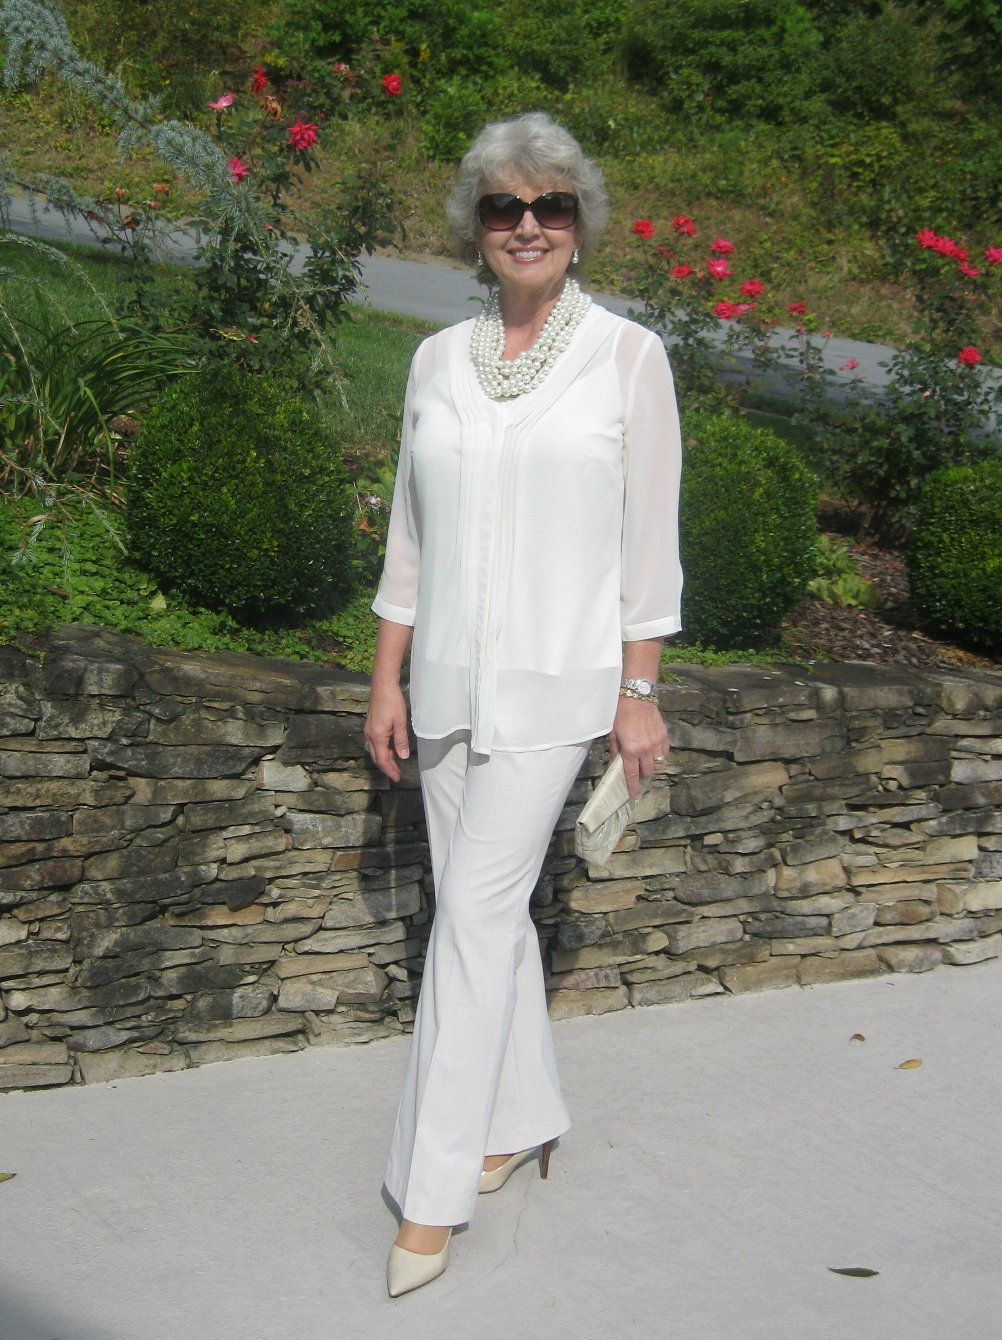 Casual fashion for over 60 - Fashion Blogger For Women Over 50 Now 60 In 2016 And Looking